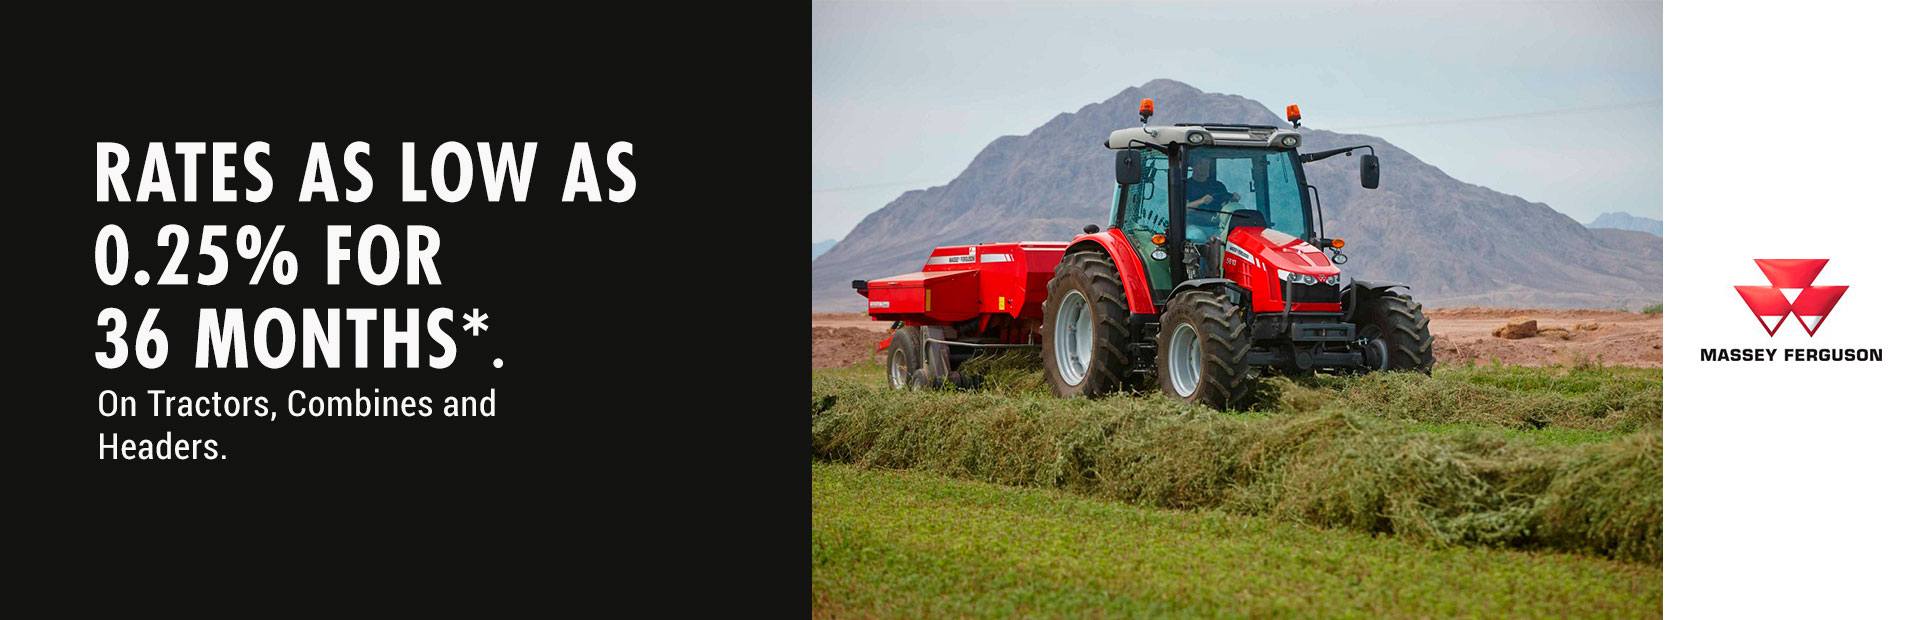 Massey Ferguson: 0.25% for 36 Months on Tractors, Combines, Headers